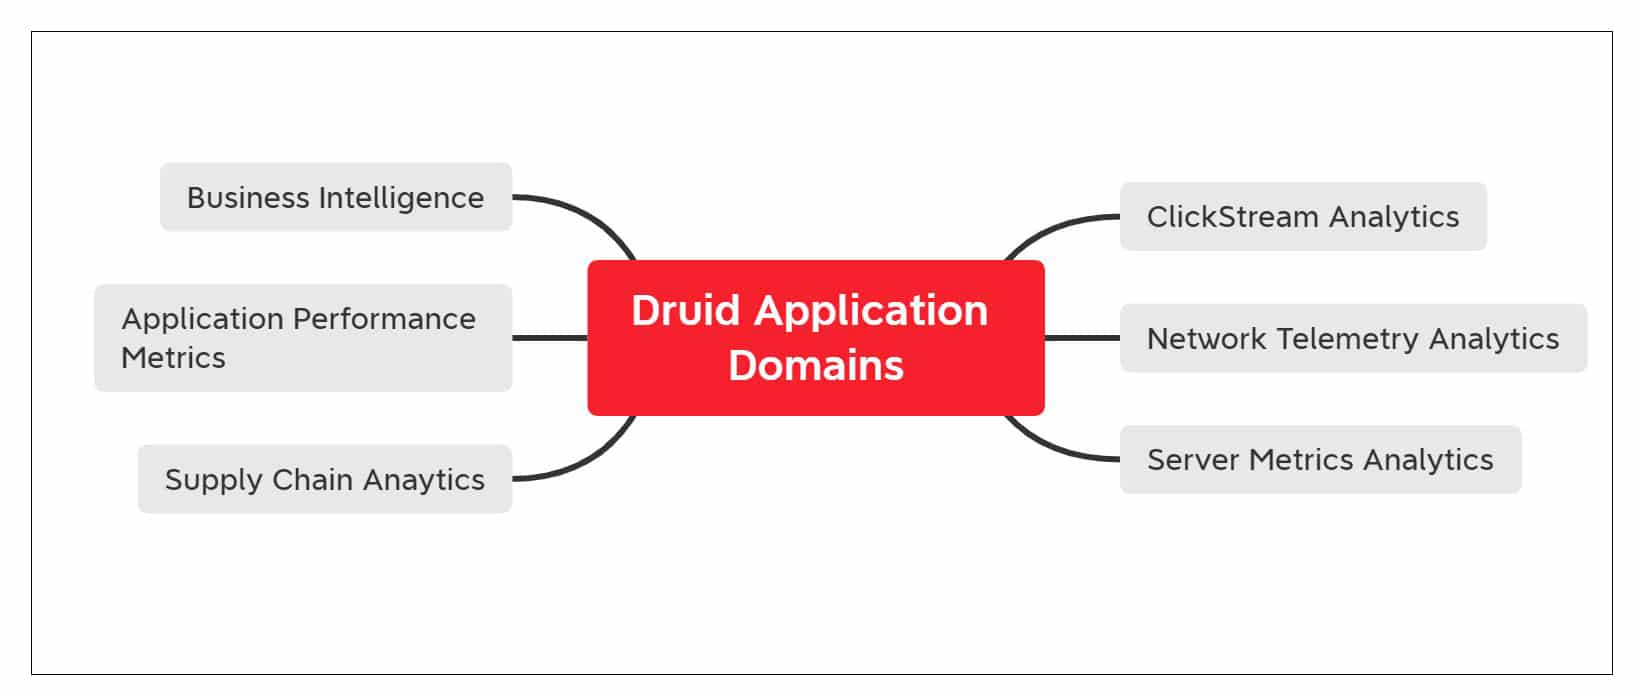 Application domains for Druid